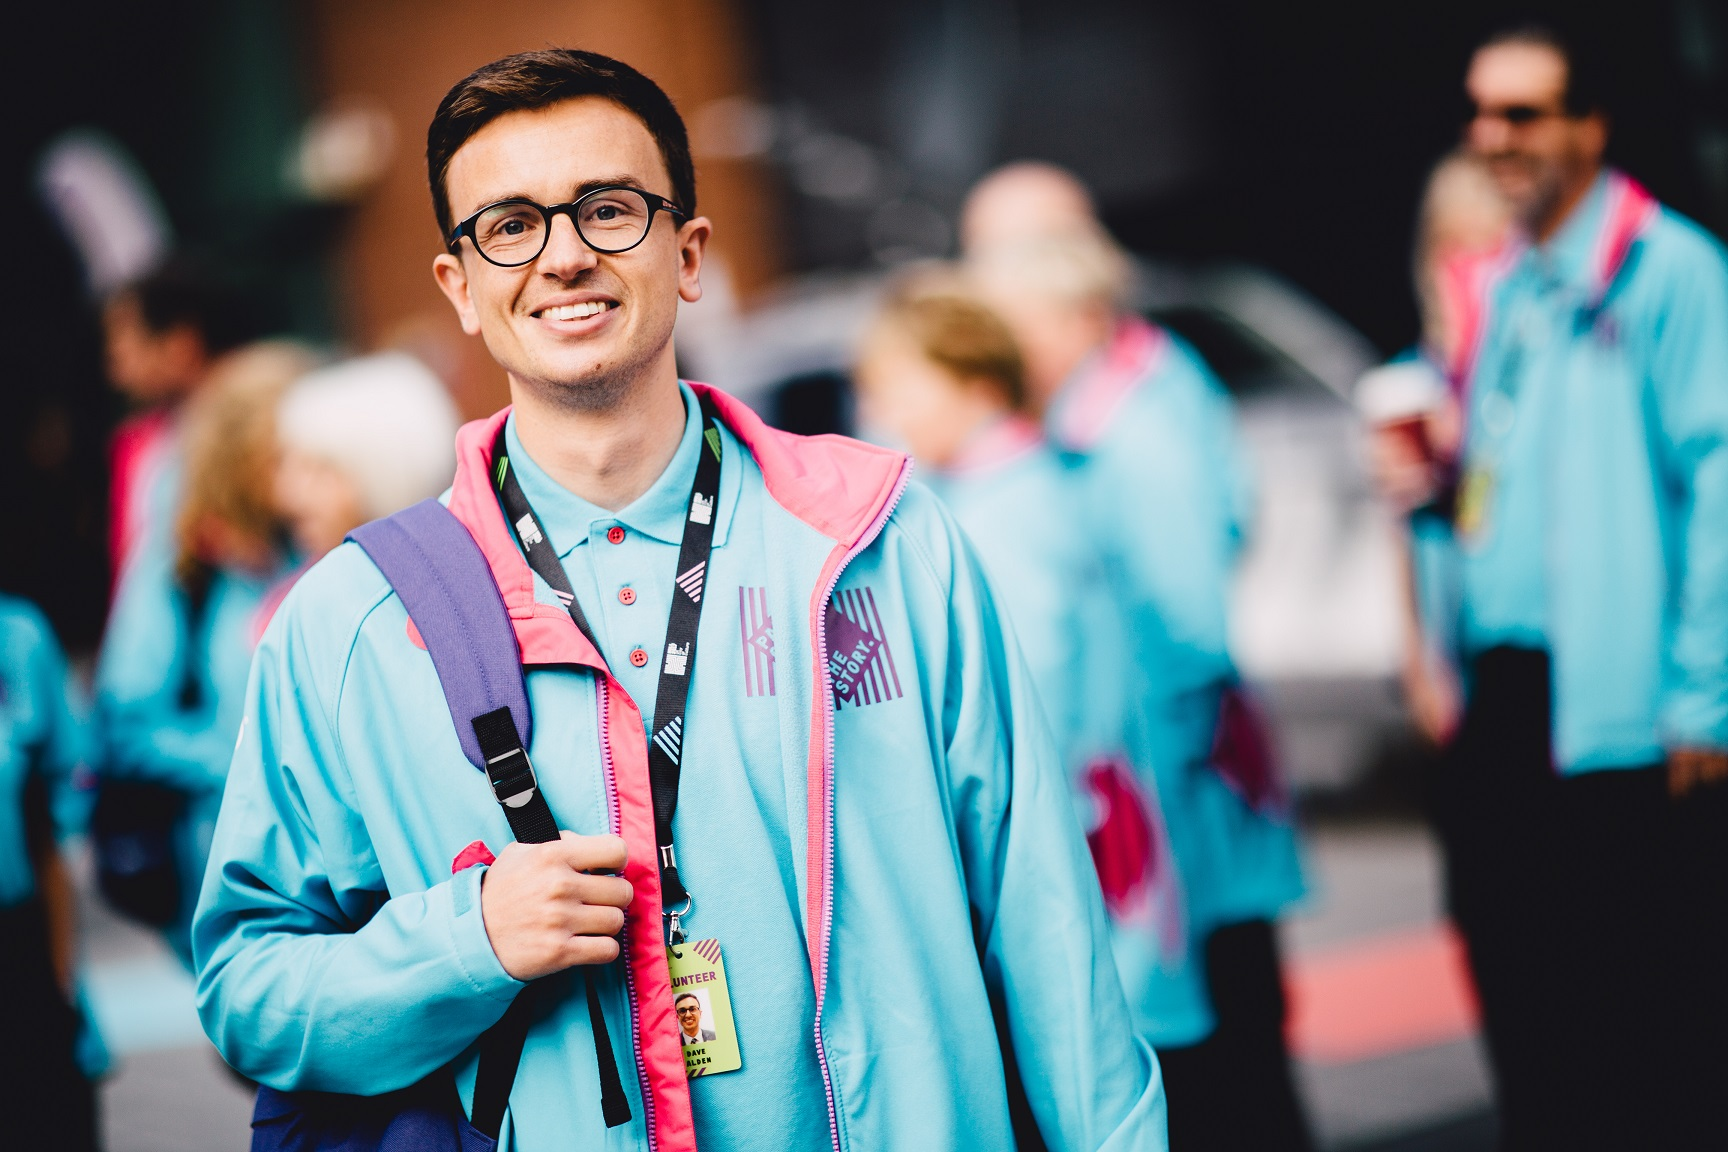 Since Hull's year as UK City of Culture 2017, the blue-coated army of volunteers has been one of the city's most recognisable sights.